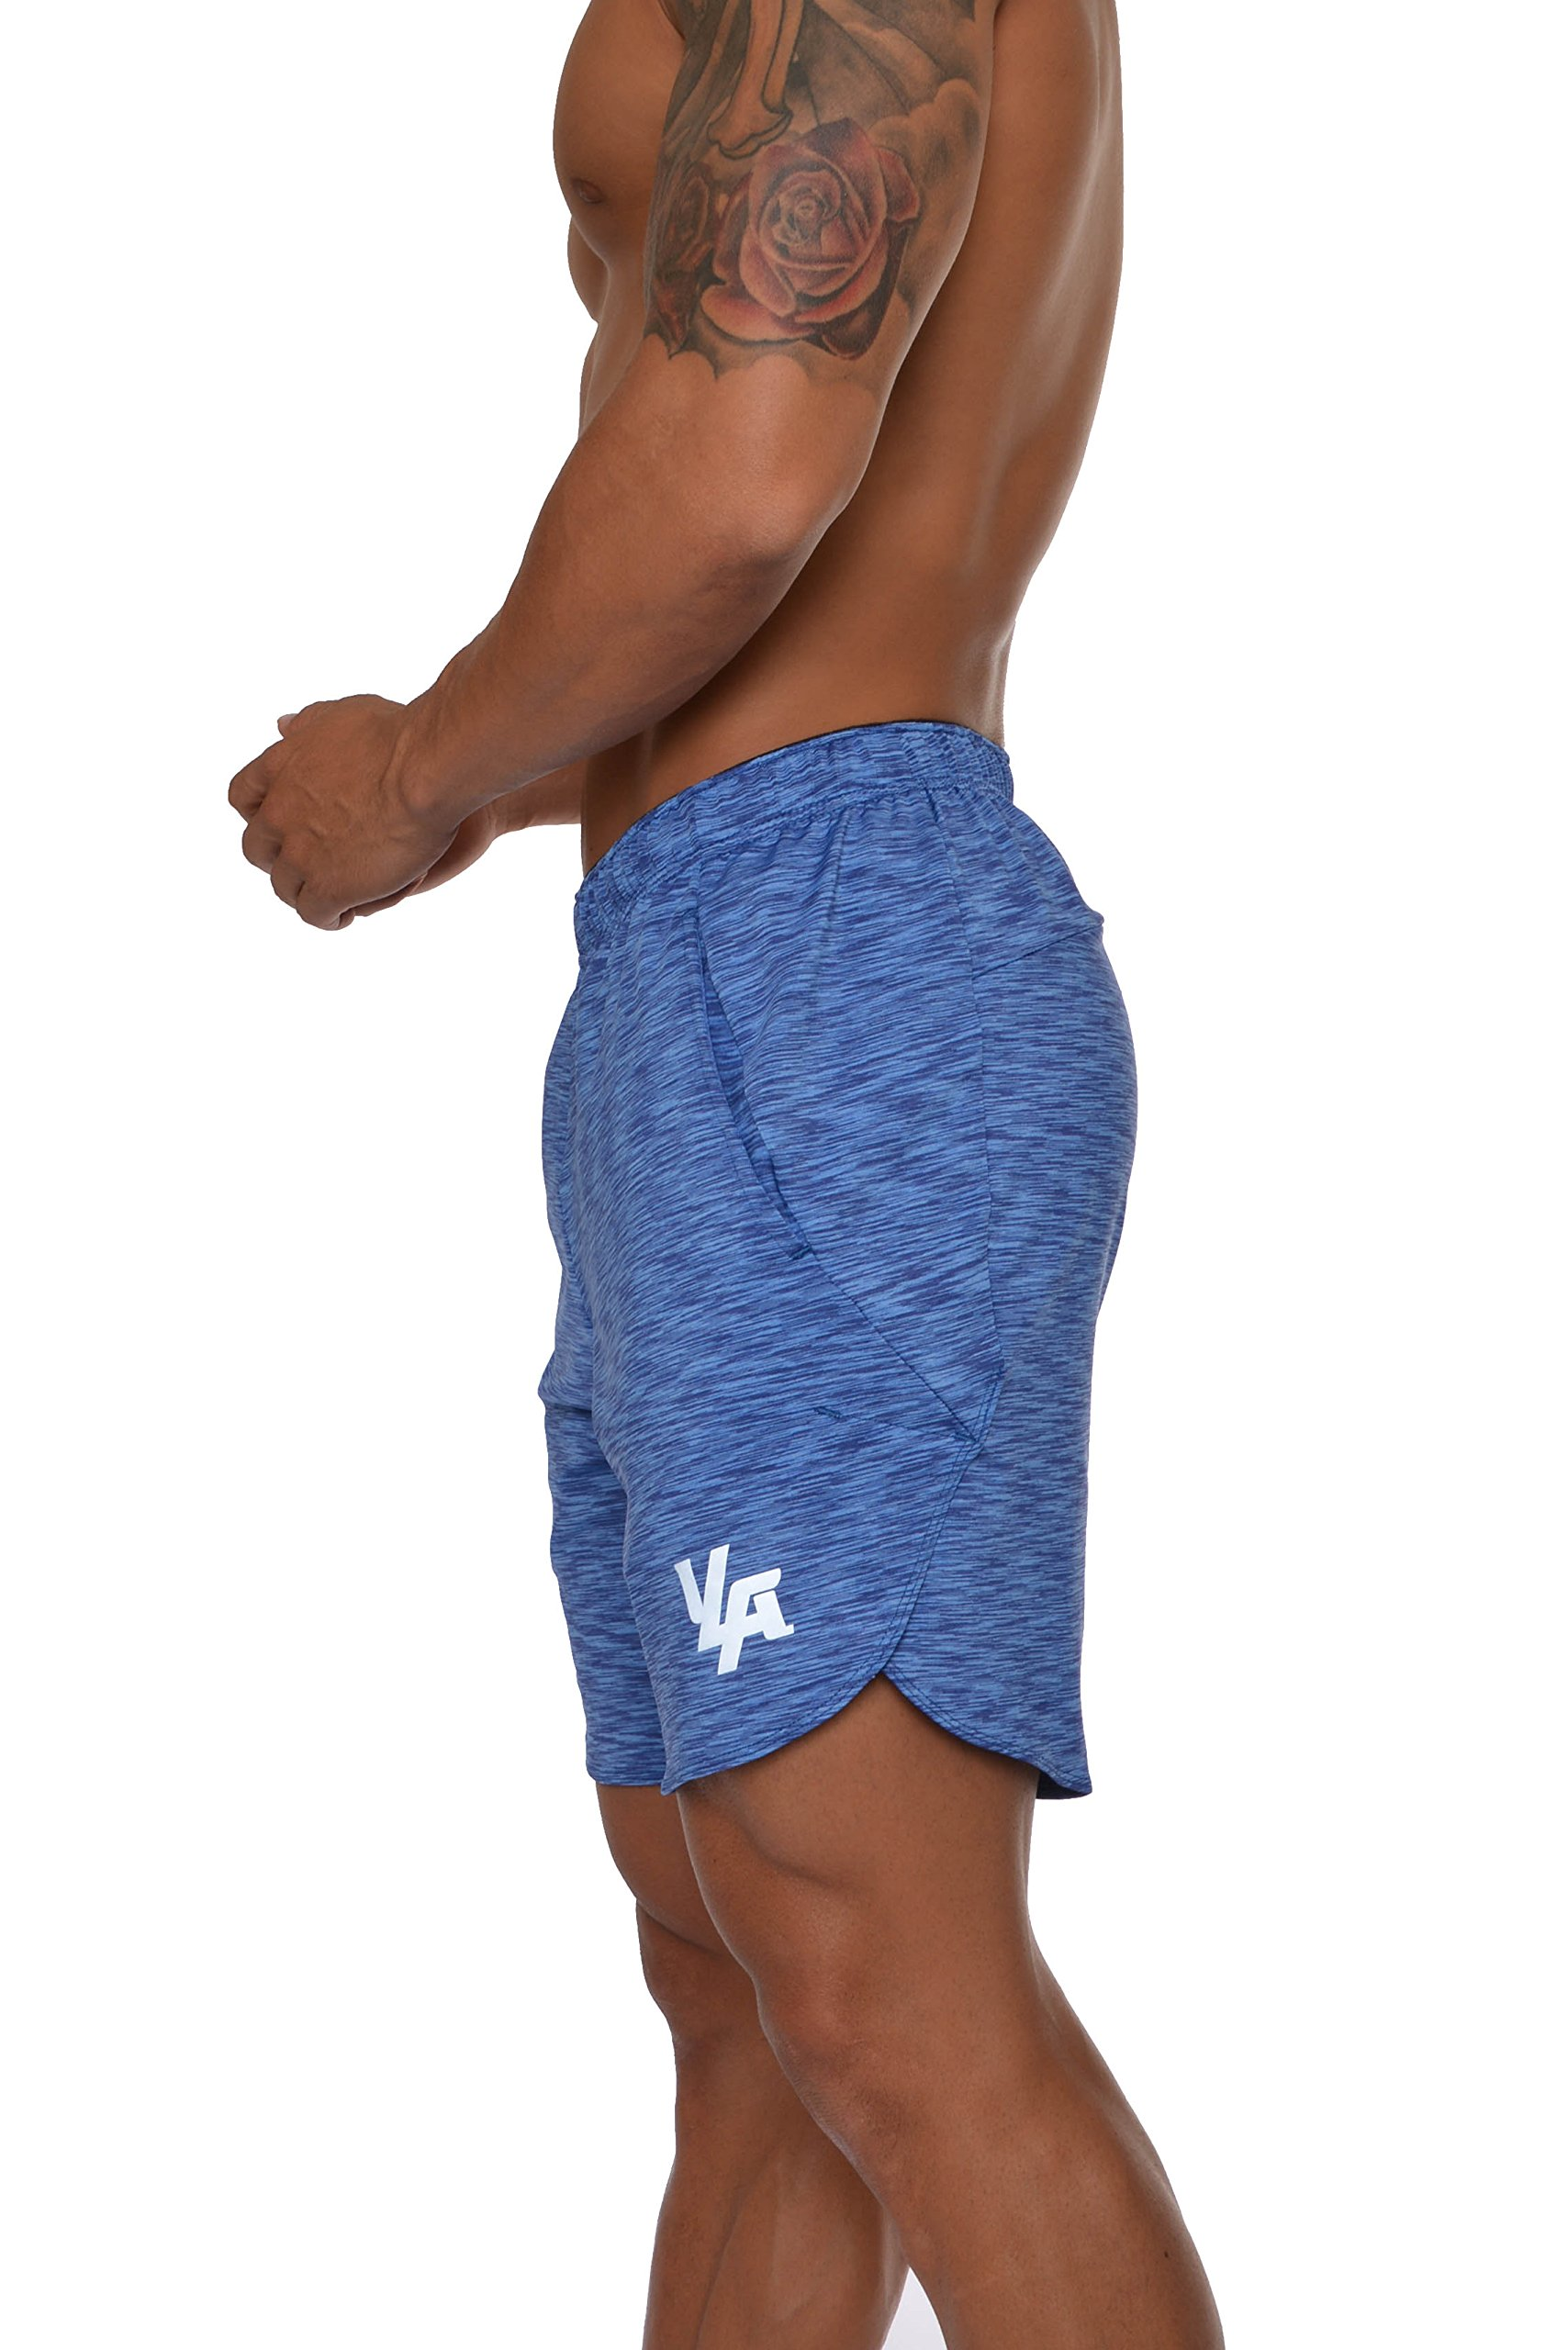 1a4d5b0dba6 YoungLA Men s Running Shorts Athletic Gym Jogging Workout Powerlifting With  Front Pockets Heather Blue Medium